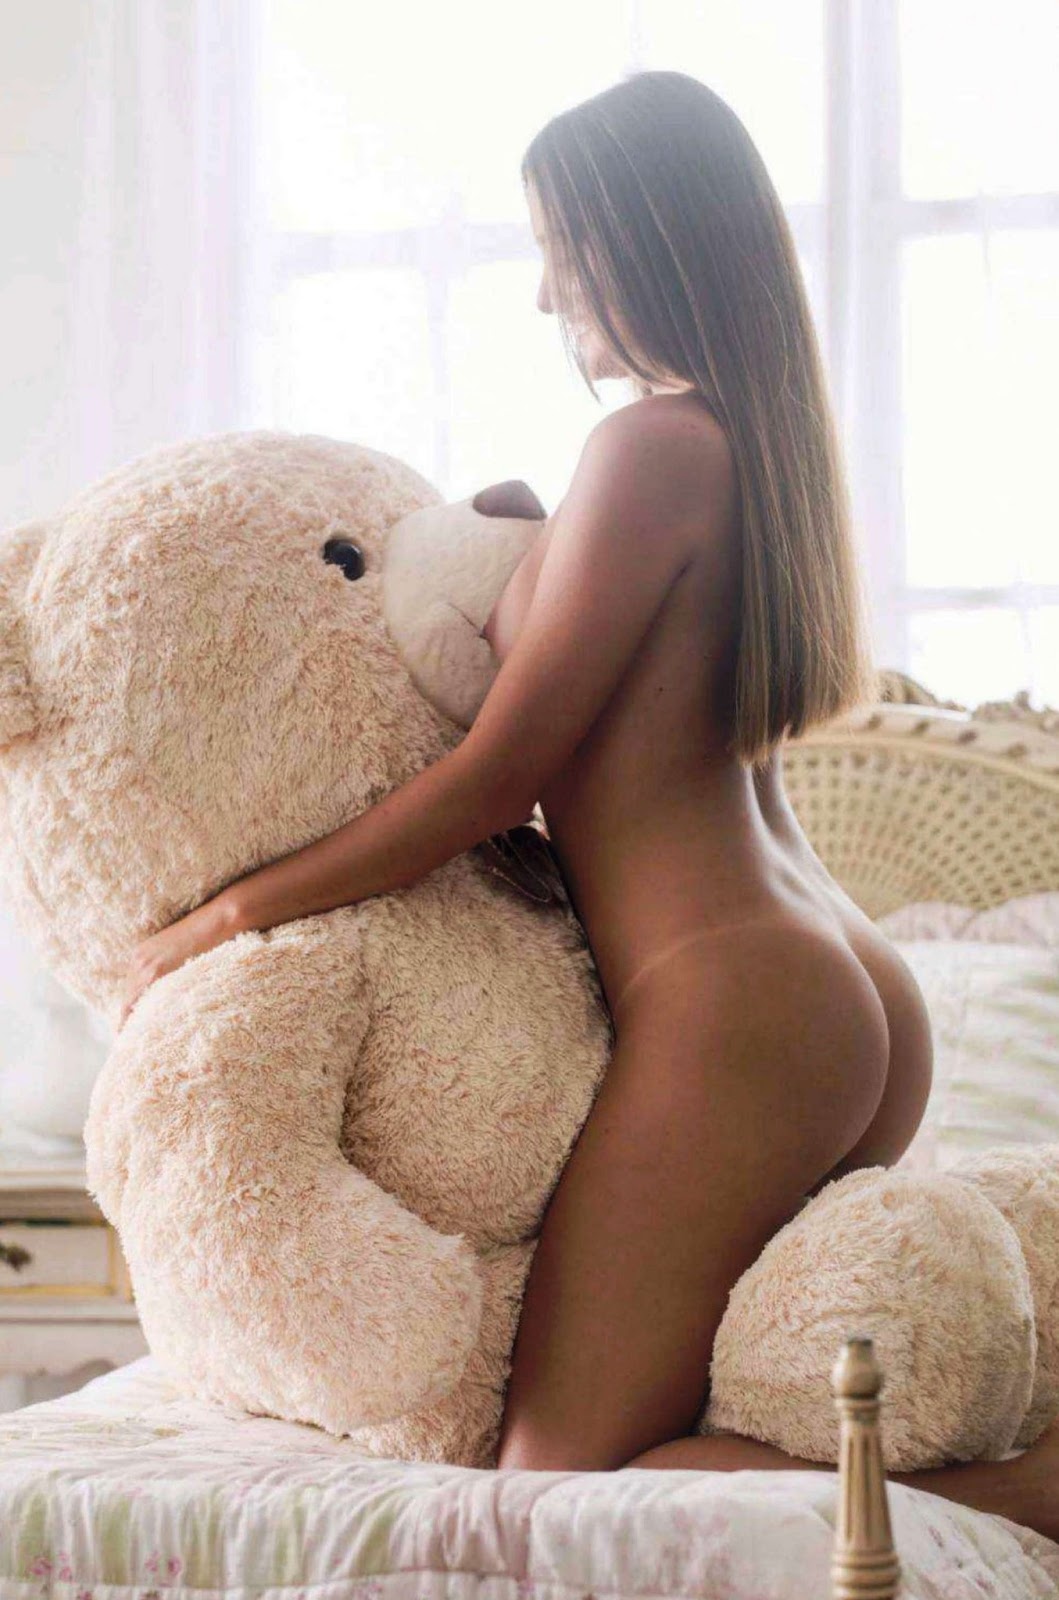 Girls Humping Teddy Bears